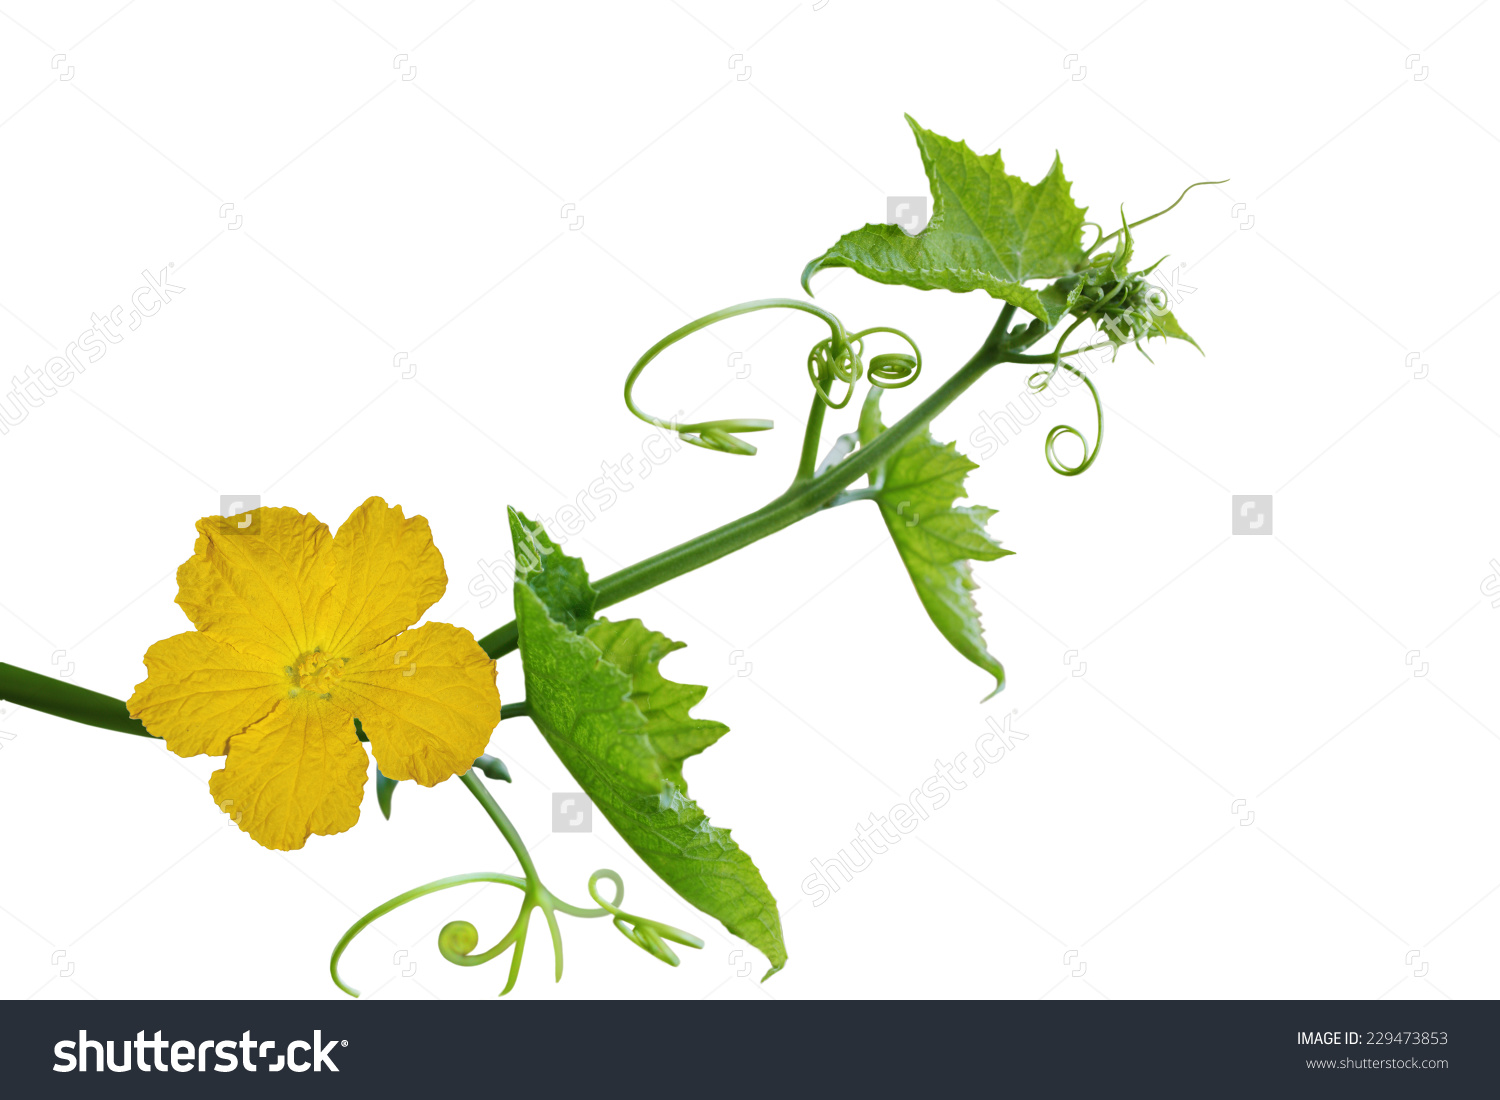 Loofah Luffa Flower Leaf Isolated On Stock Photo 229473853.